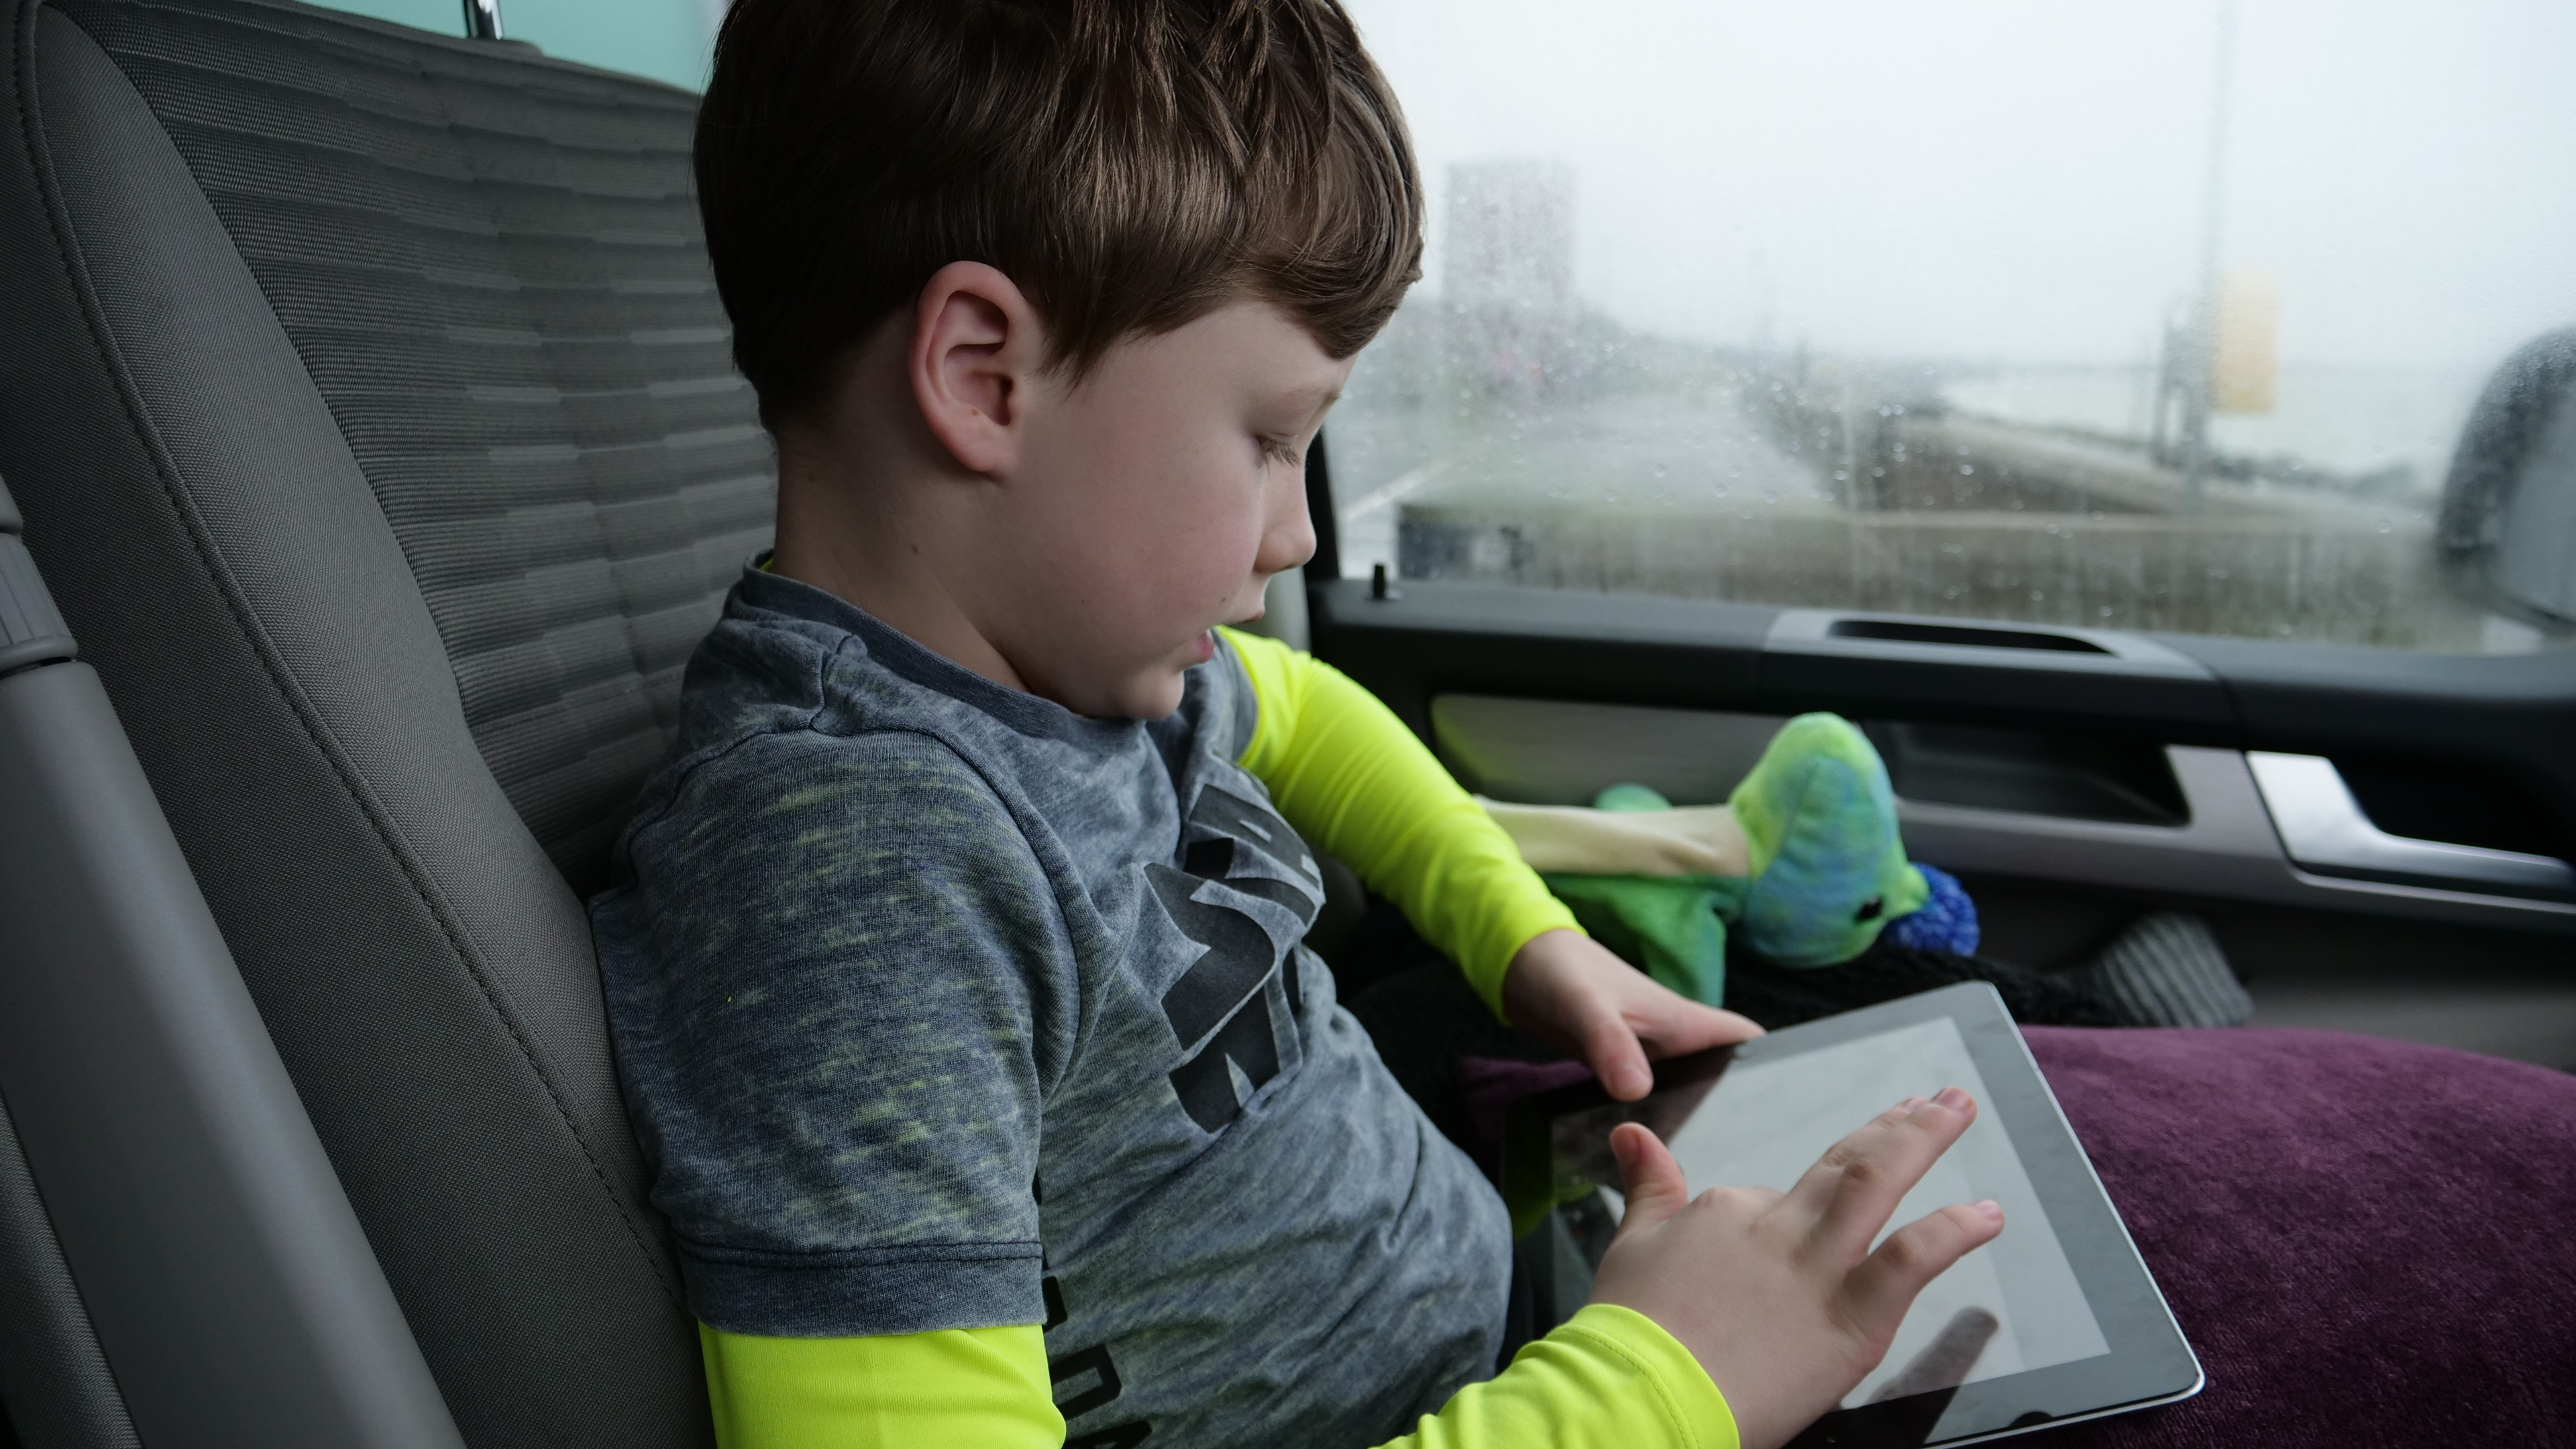 A young boy in a car plays with a tablet computer.